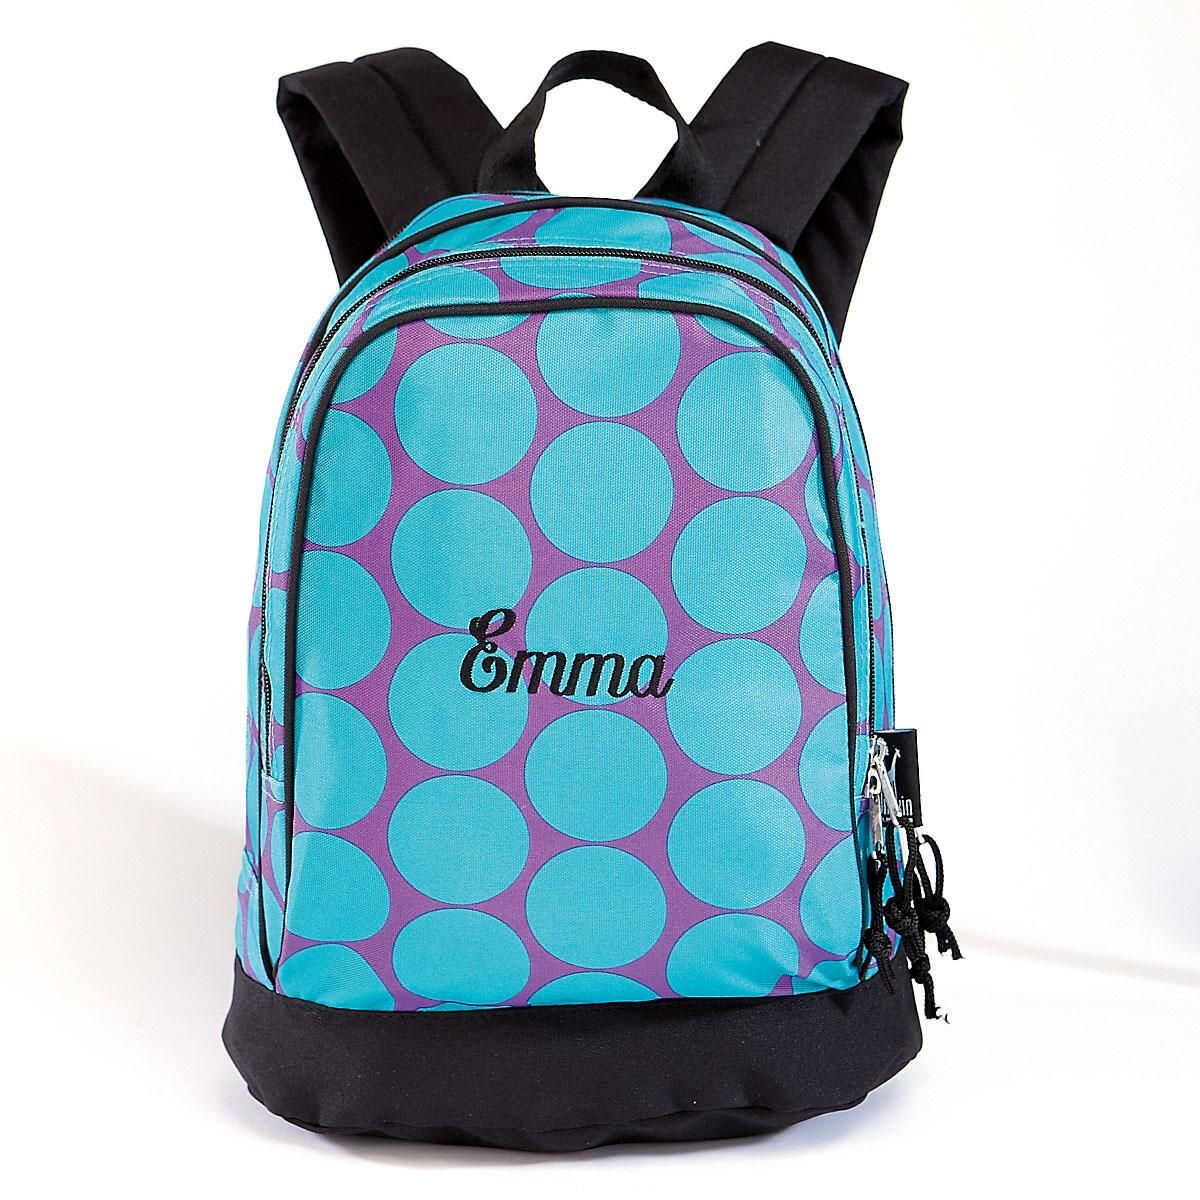 Aqua Dots Backpack